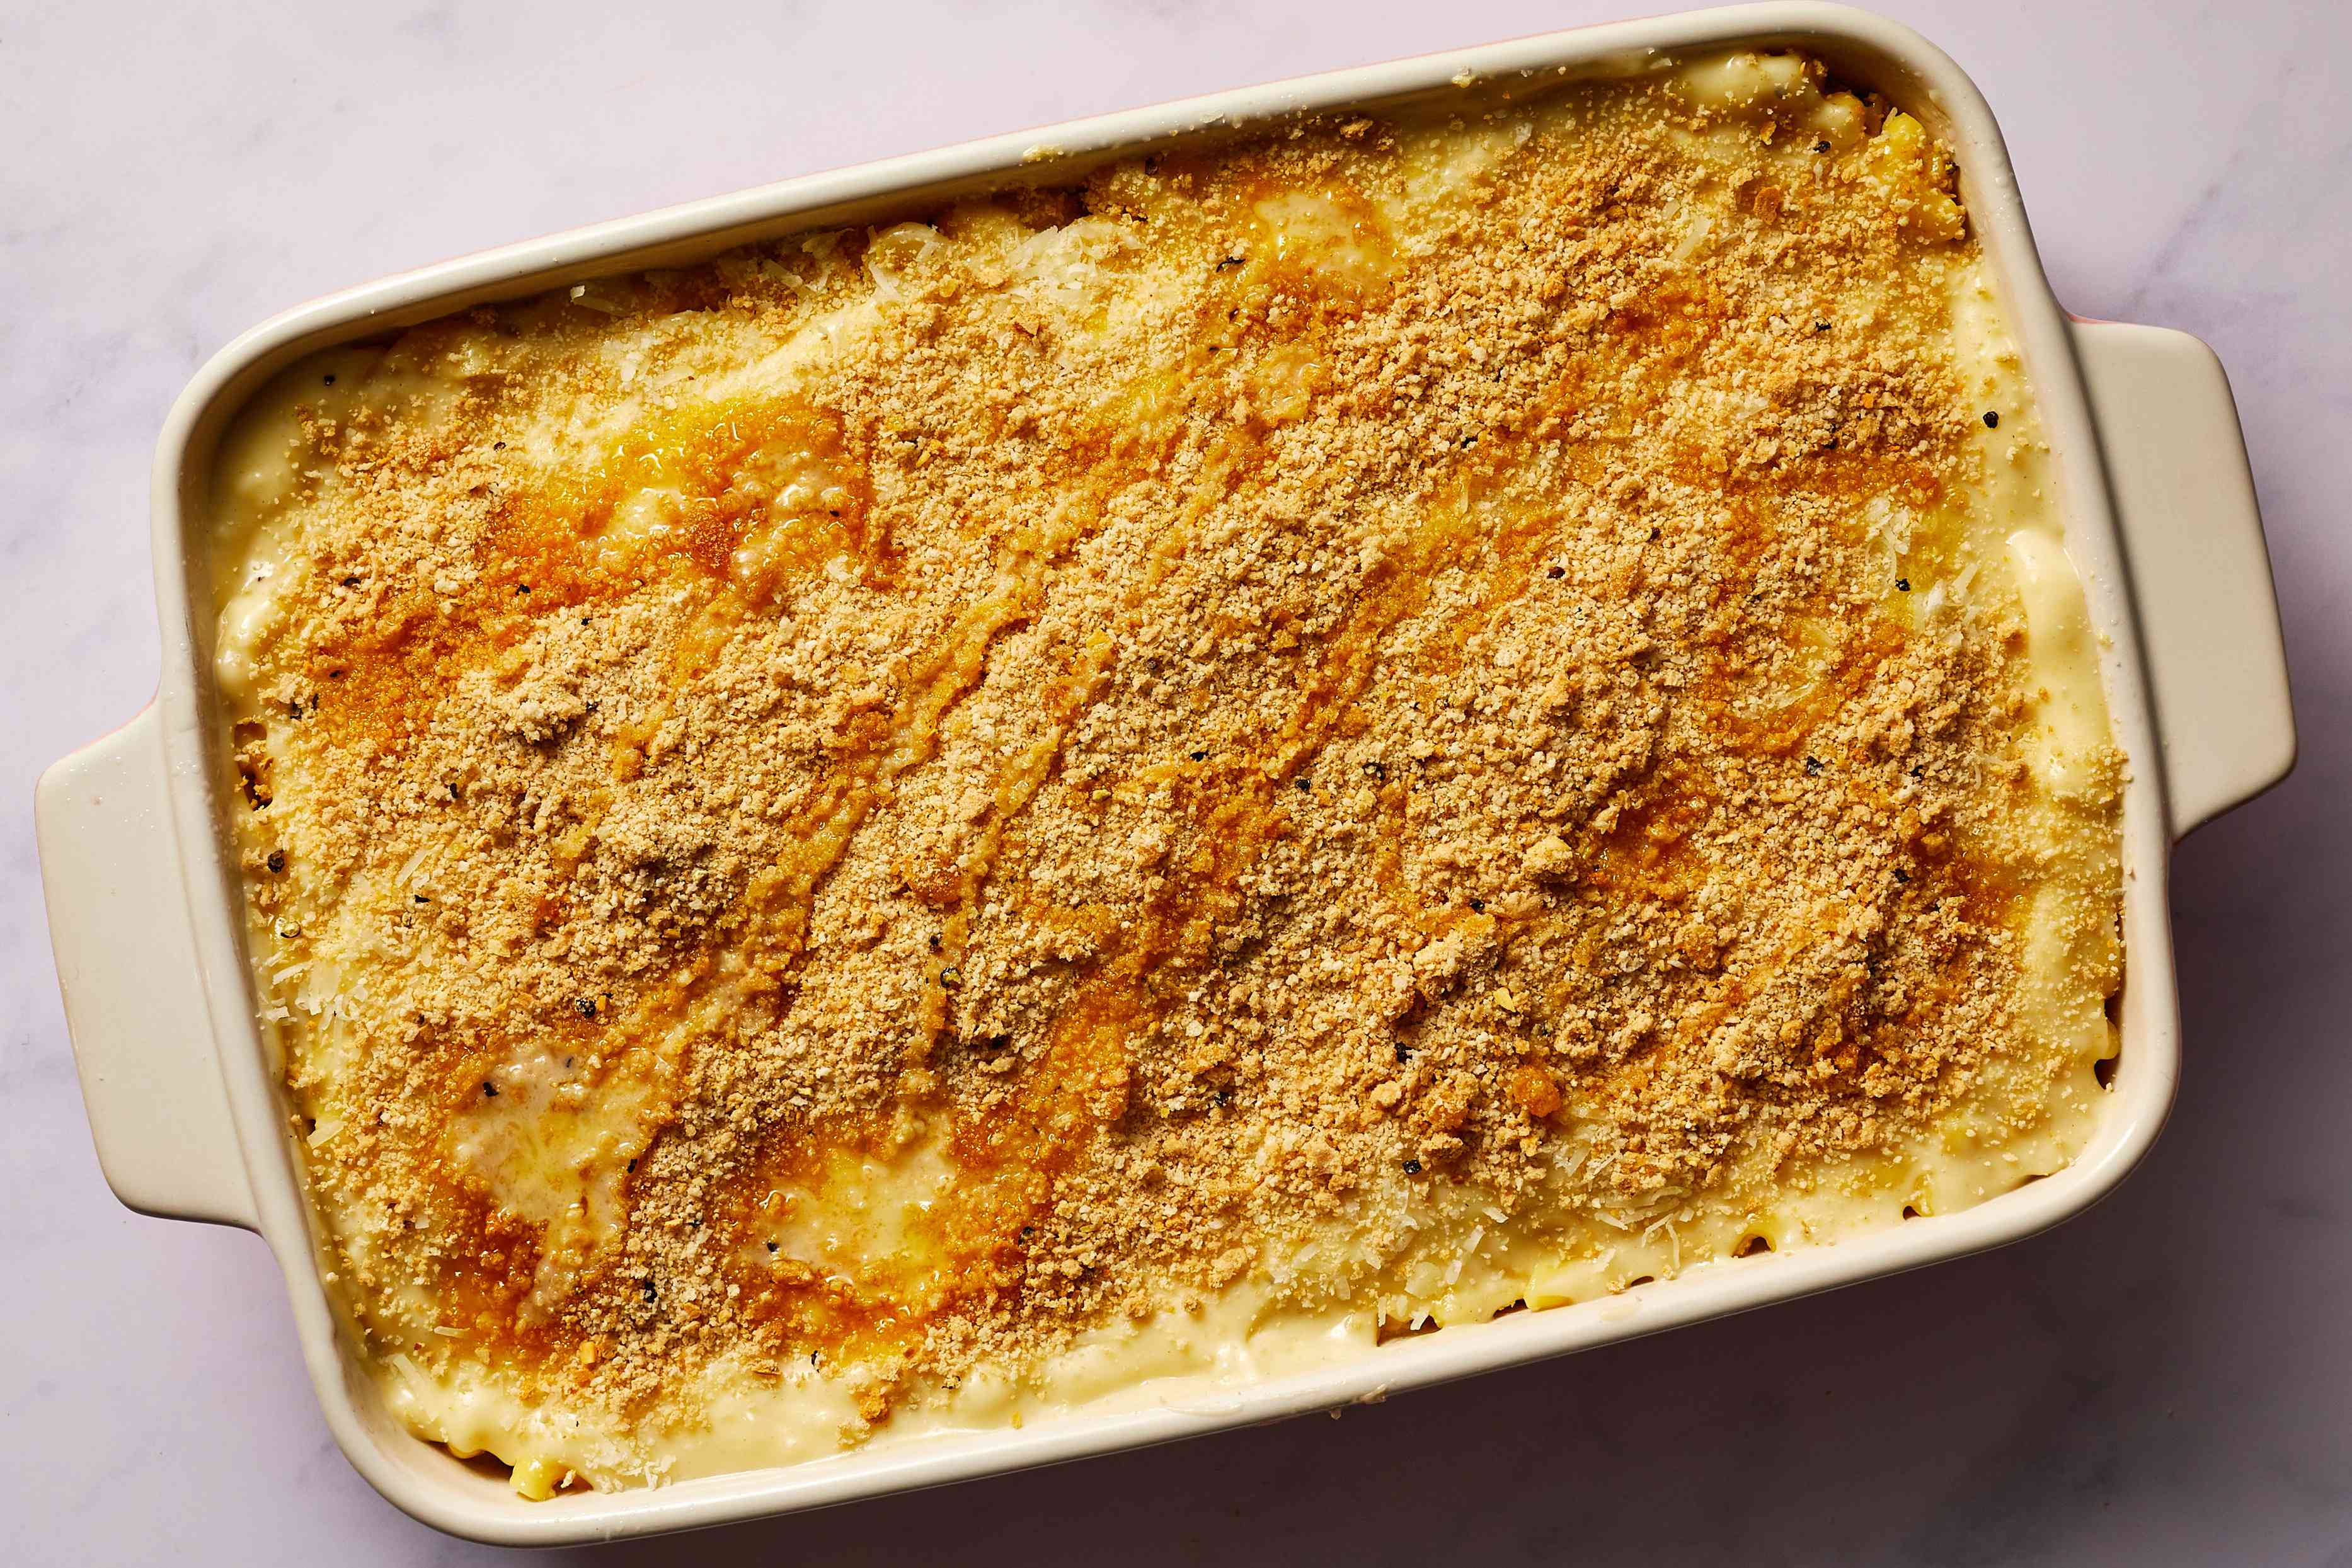 Greek Macoroni and Cheese Baked Pasta in a baking dish